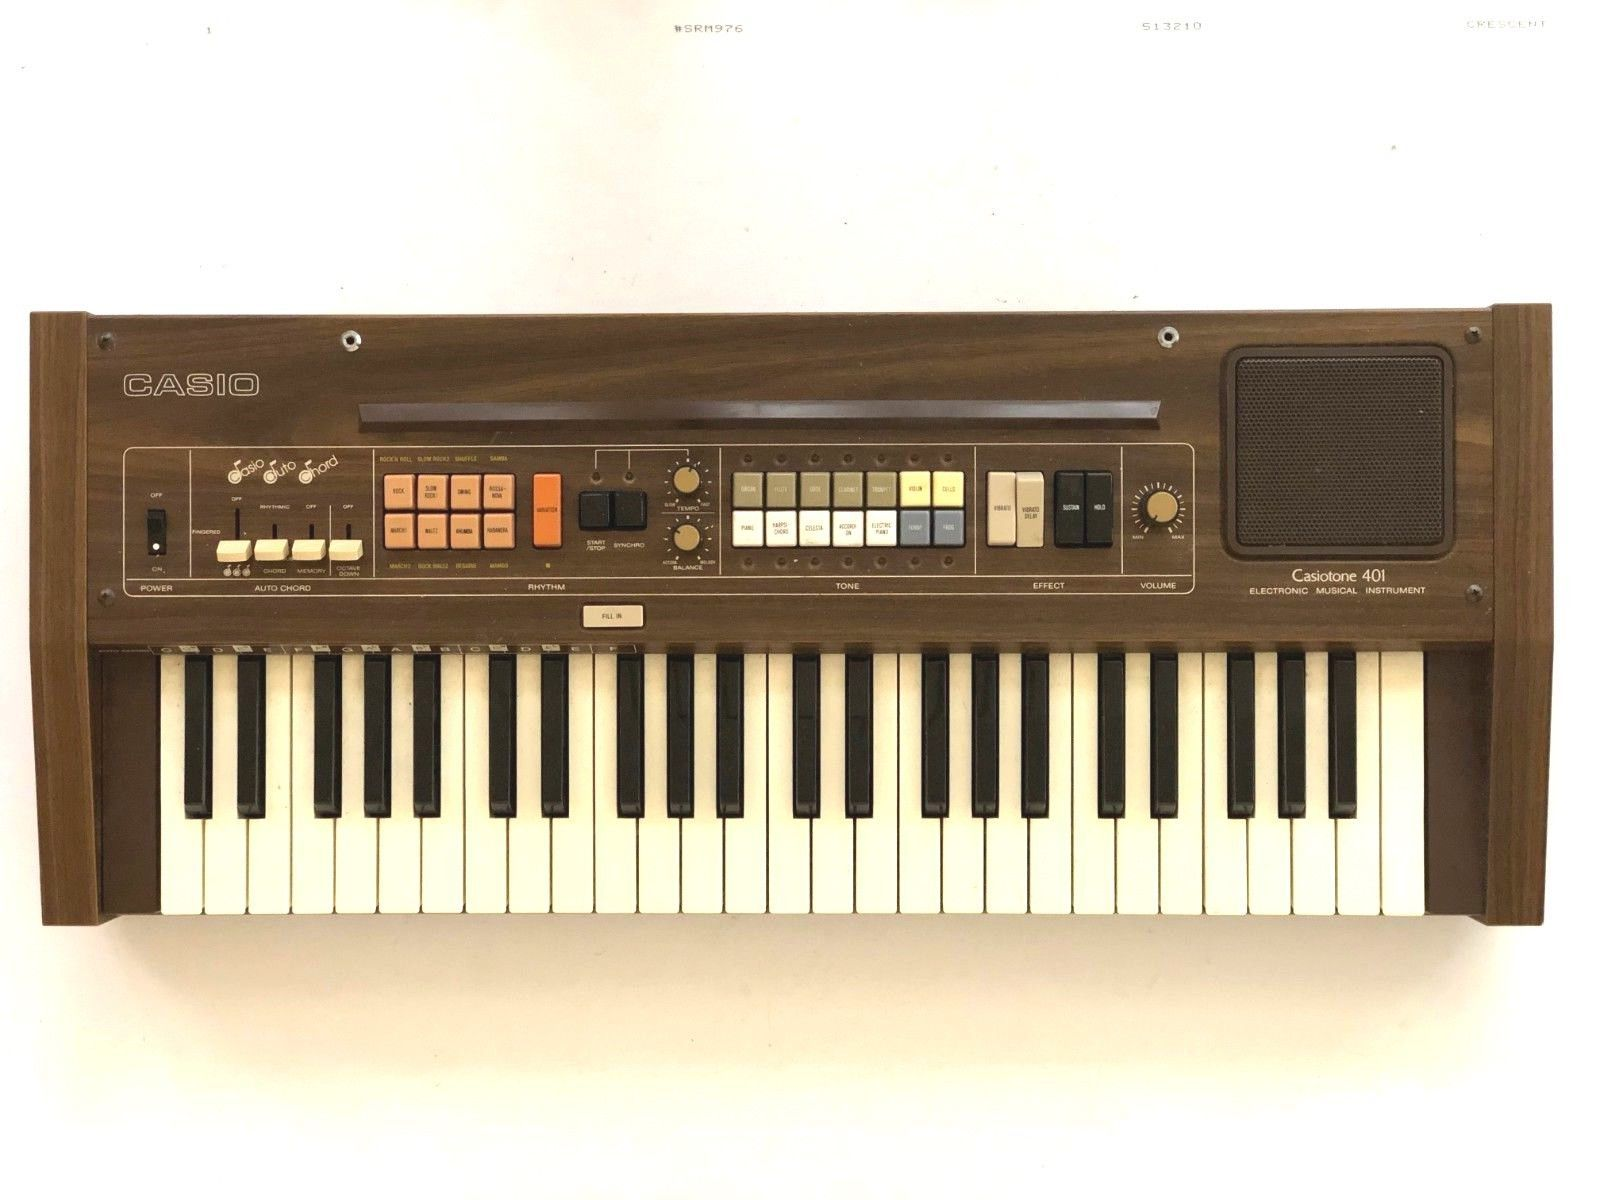 Vintage 1980's Casio Casiotone 401 Piano Synthesizer Organ electric